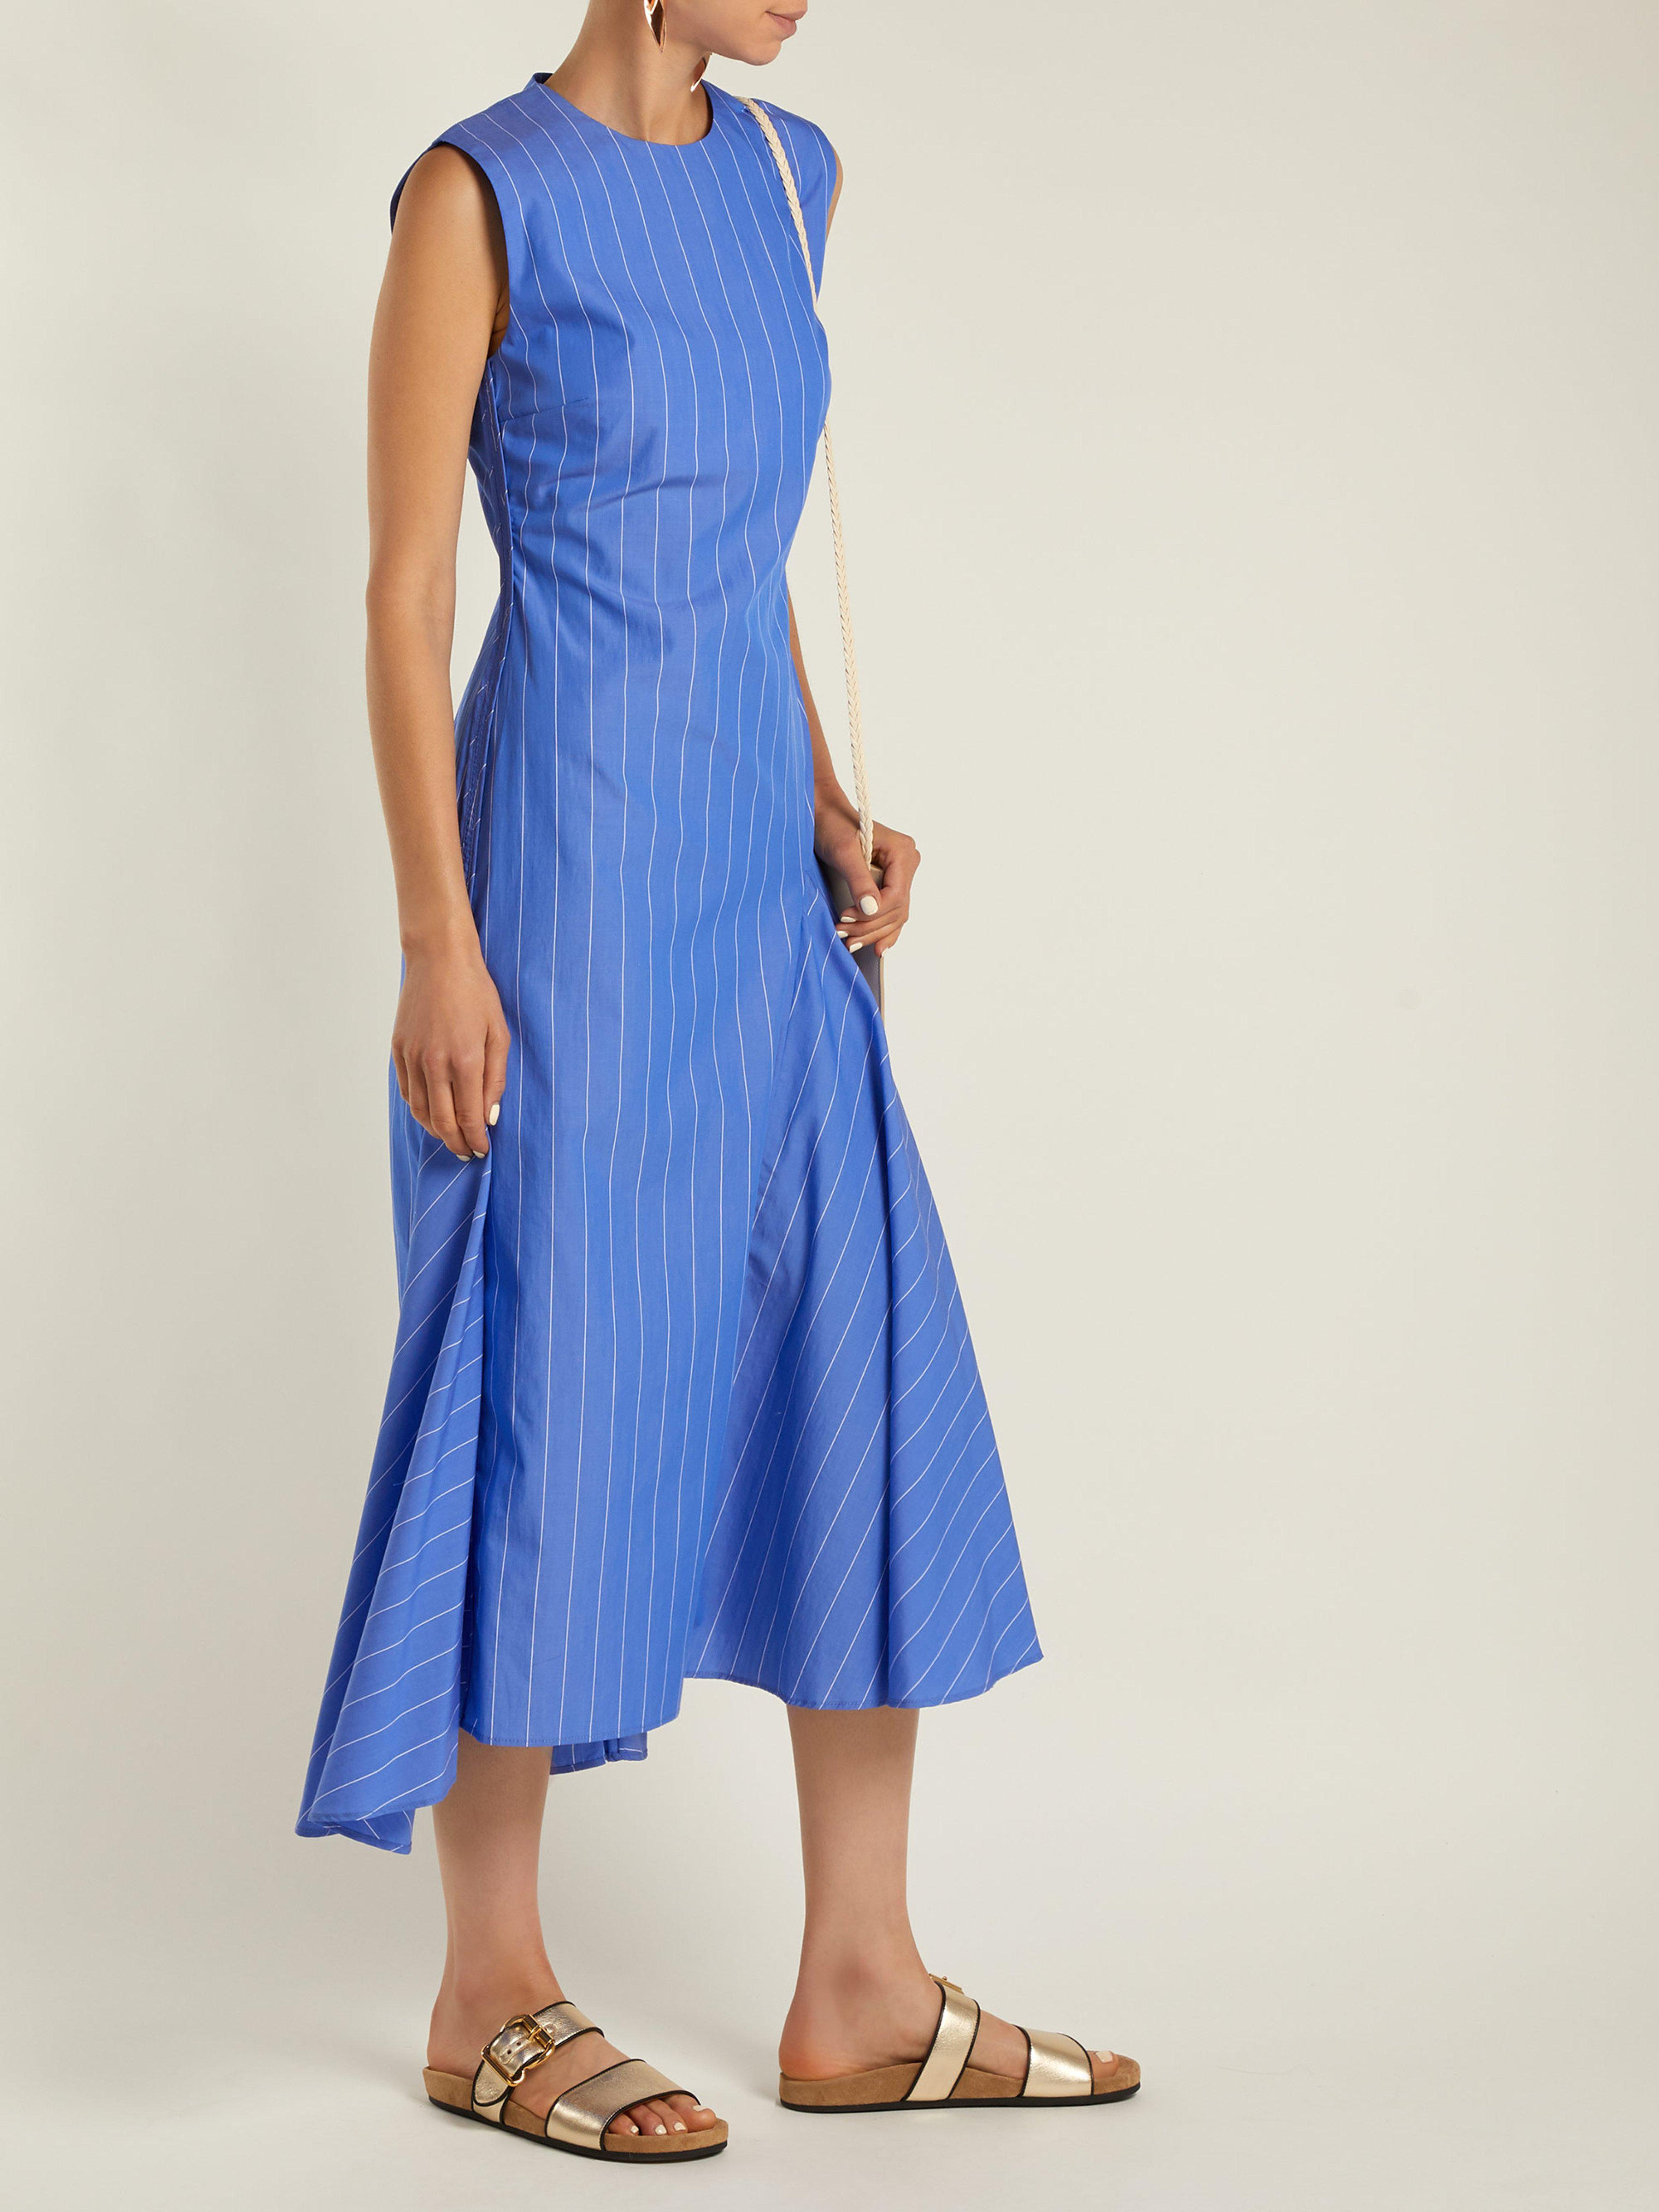 32383f1ef22b ellery--Nightwood-Striped-Cotton-Midi-Dress.jpeg